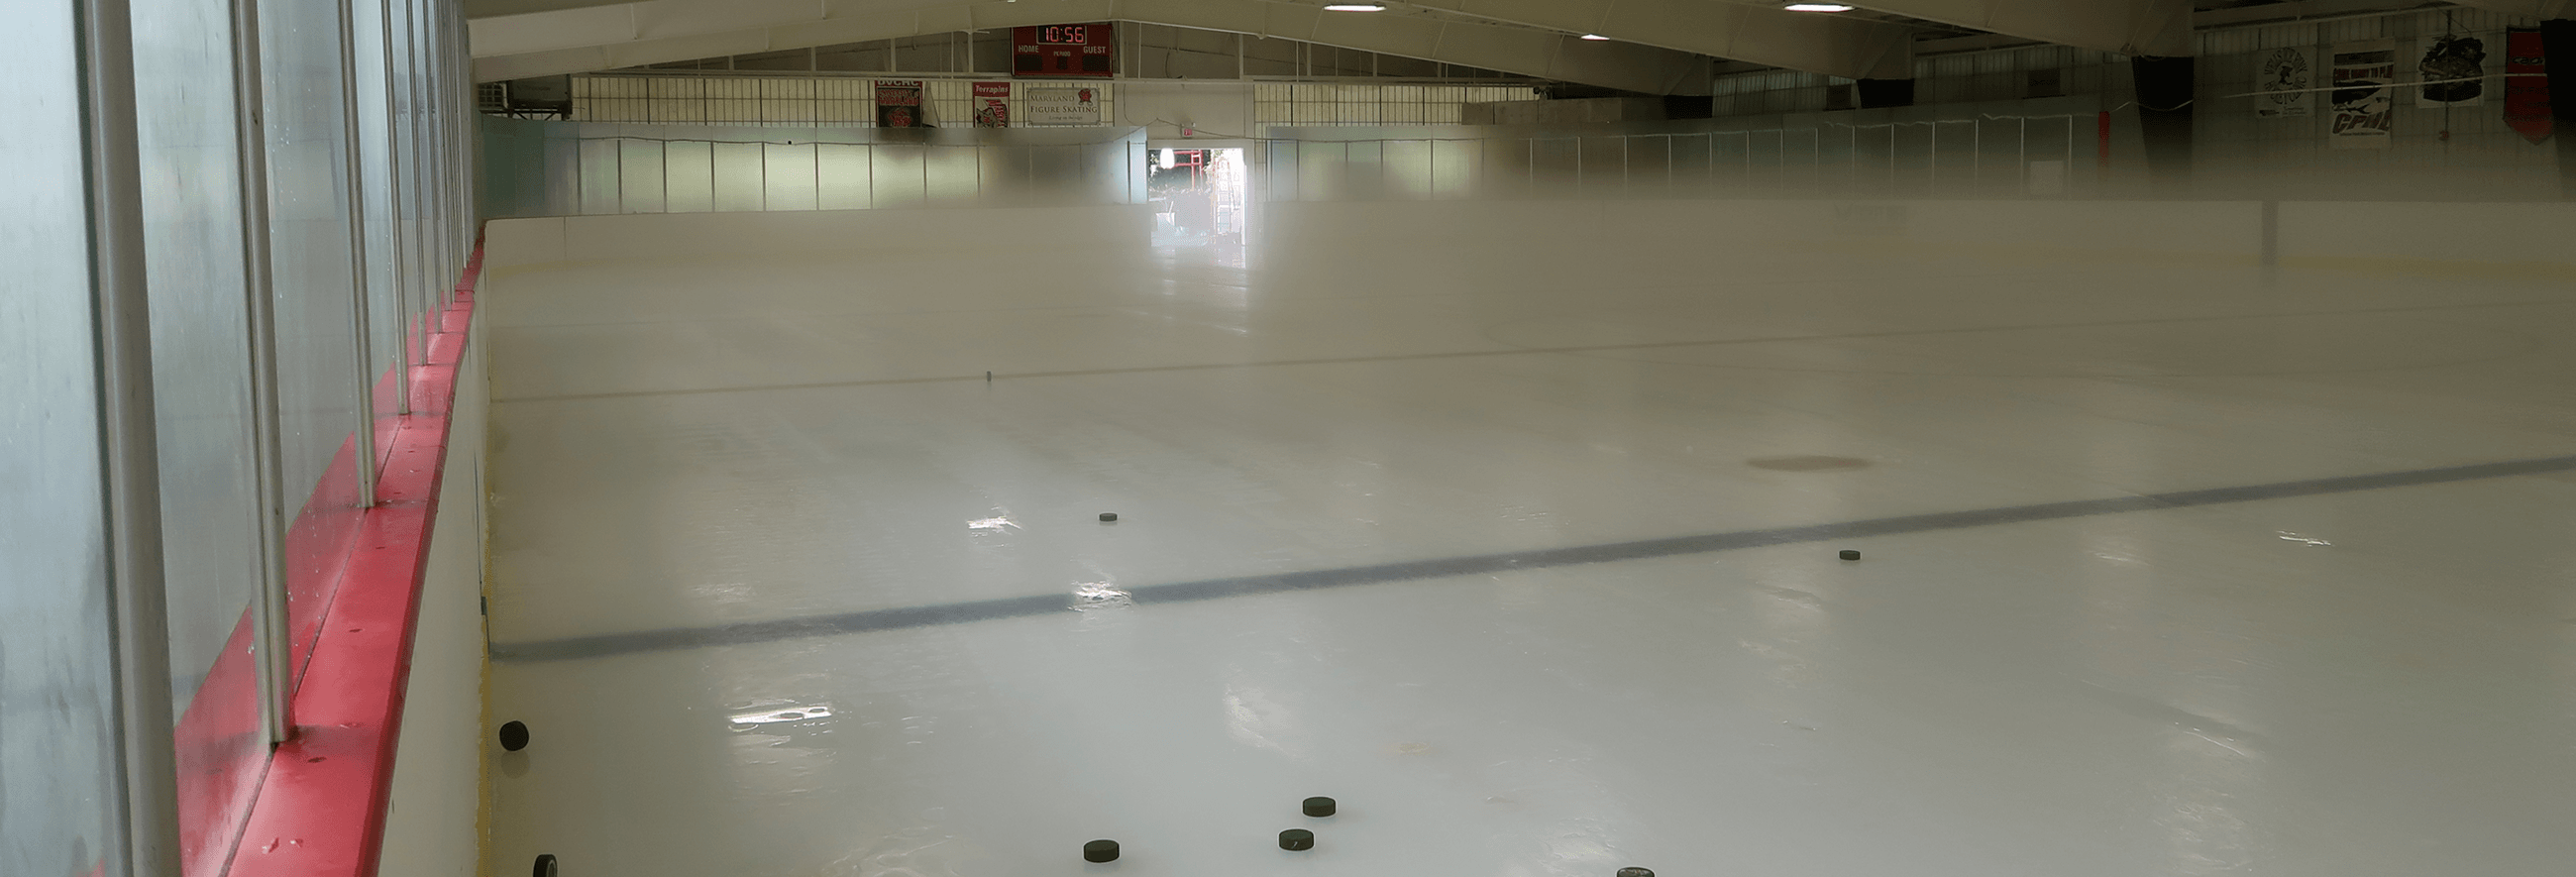 Wells Ice Rink cropped